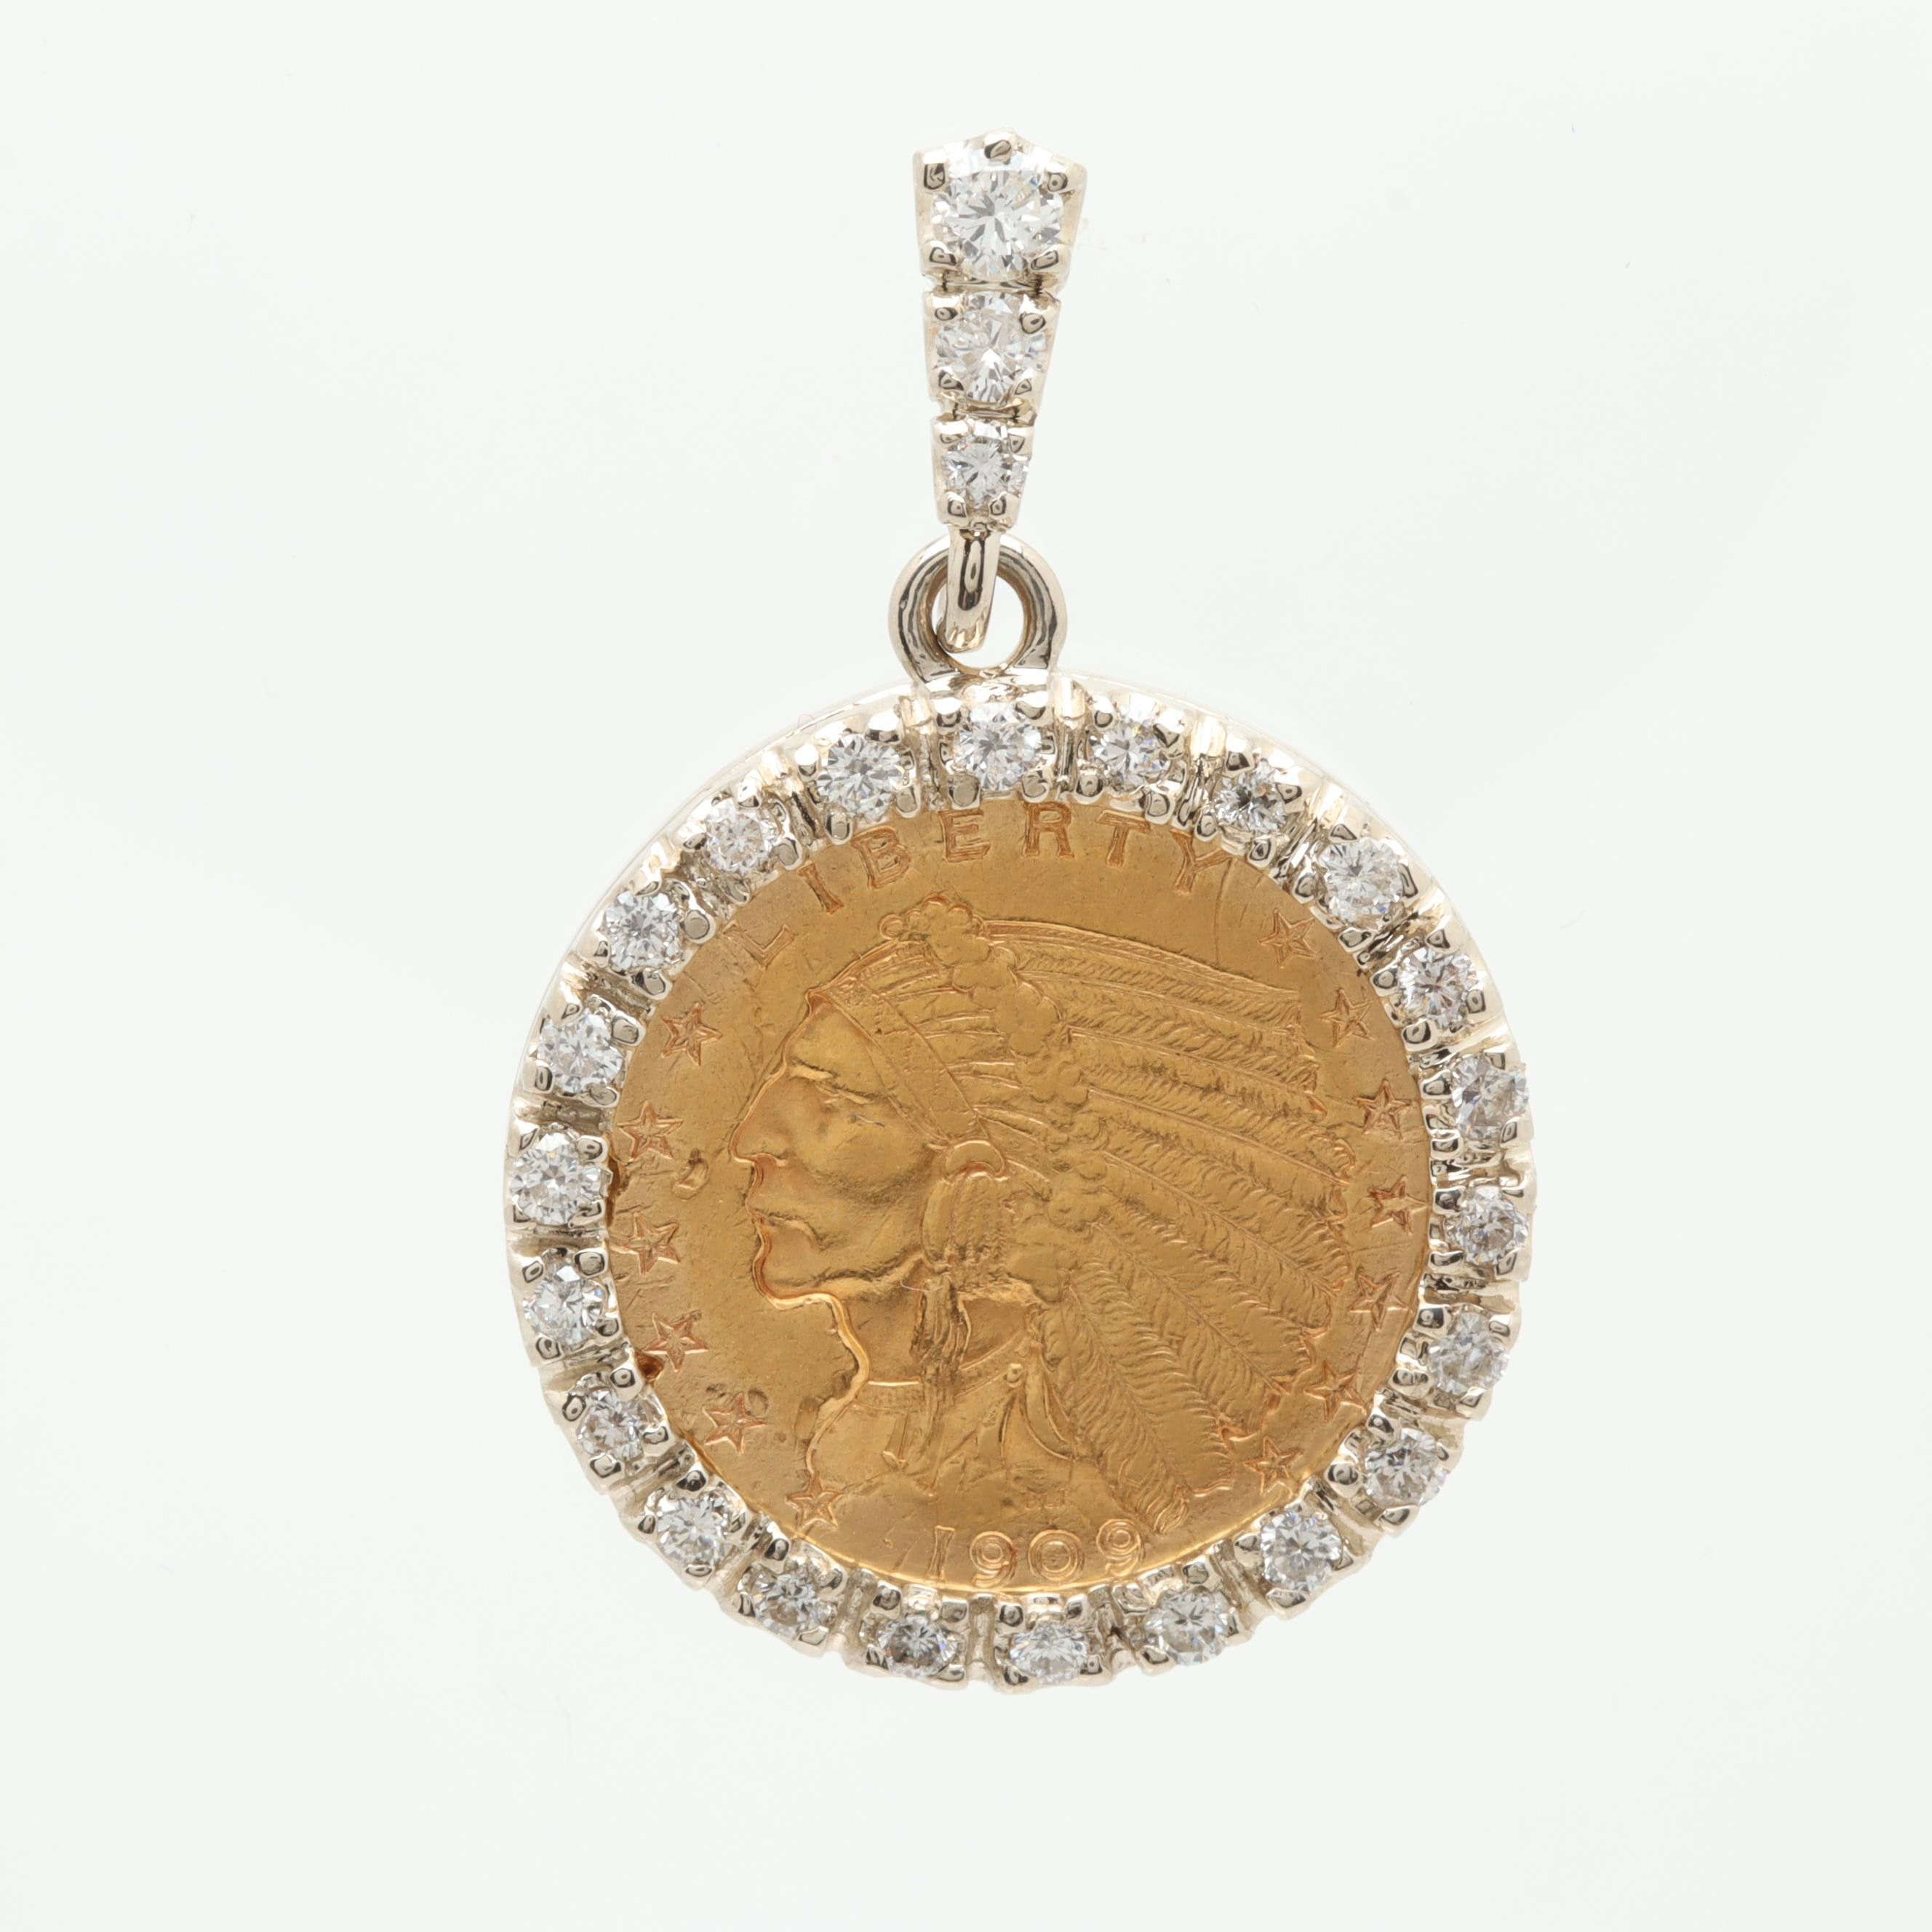 14K Yellow Gold Diamond Pendant with 1909 Indian Head $2.5 Gold Coin